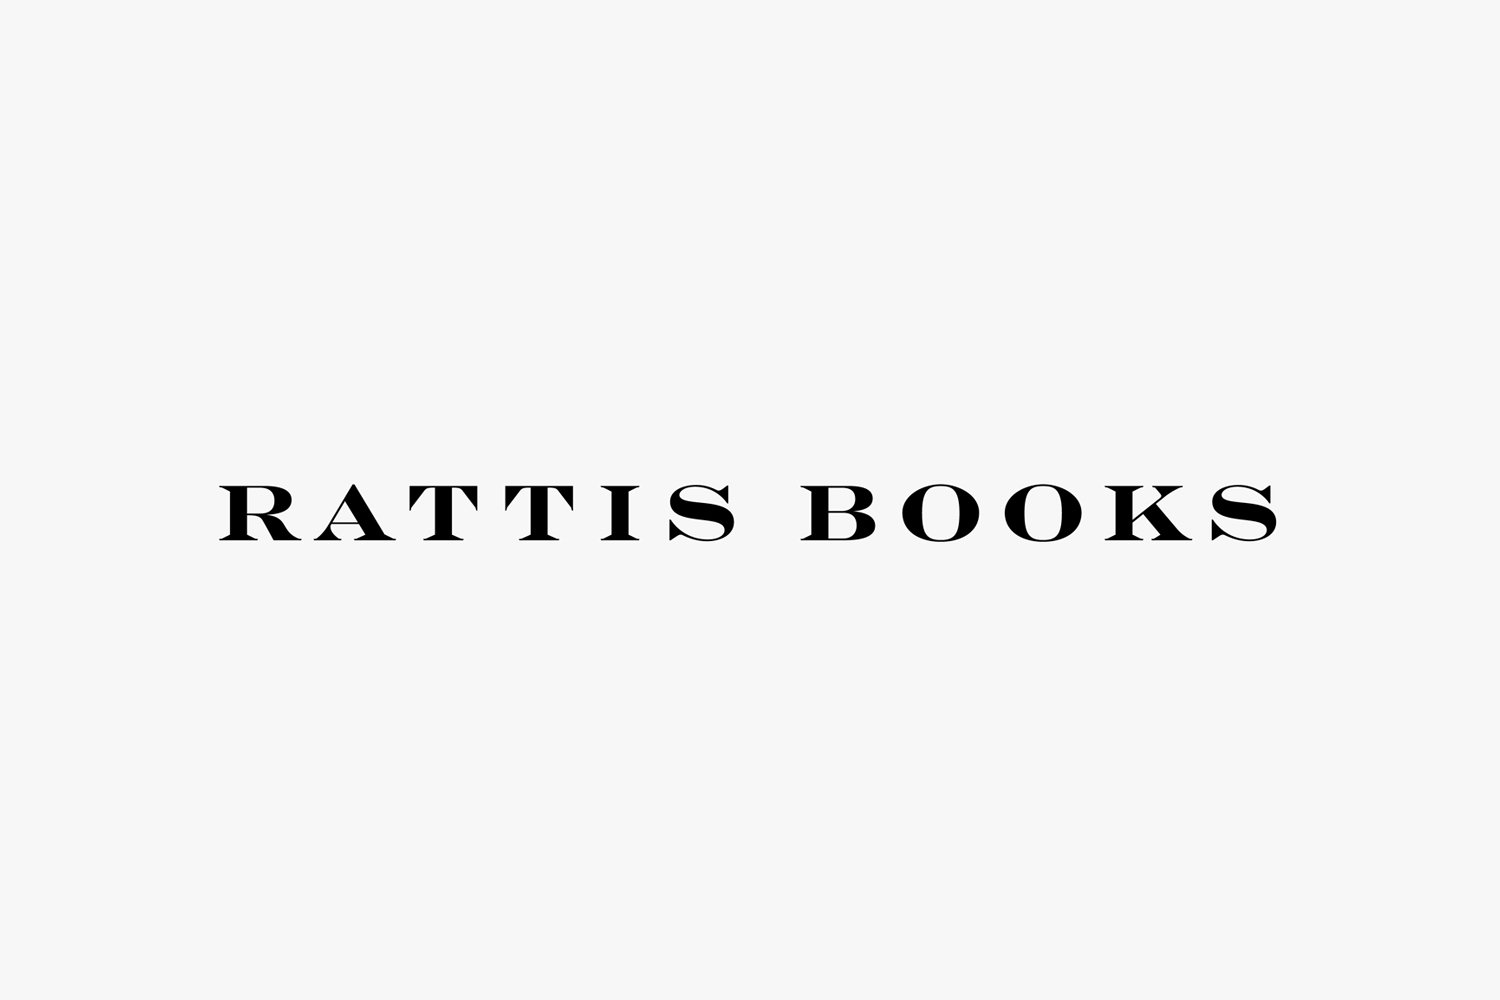 Logotype by London-based design studio, private press and typography workshop The Counter Press for UK independent publisher Rattis Books.